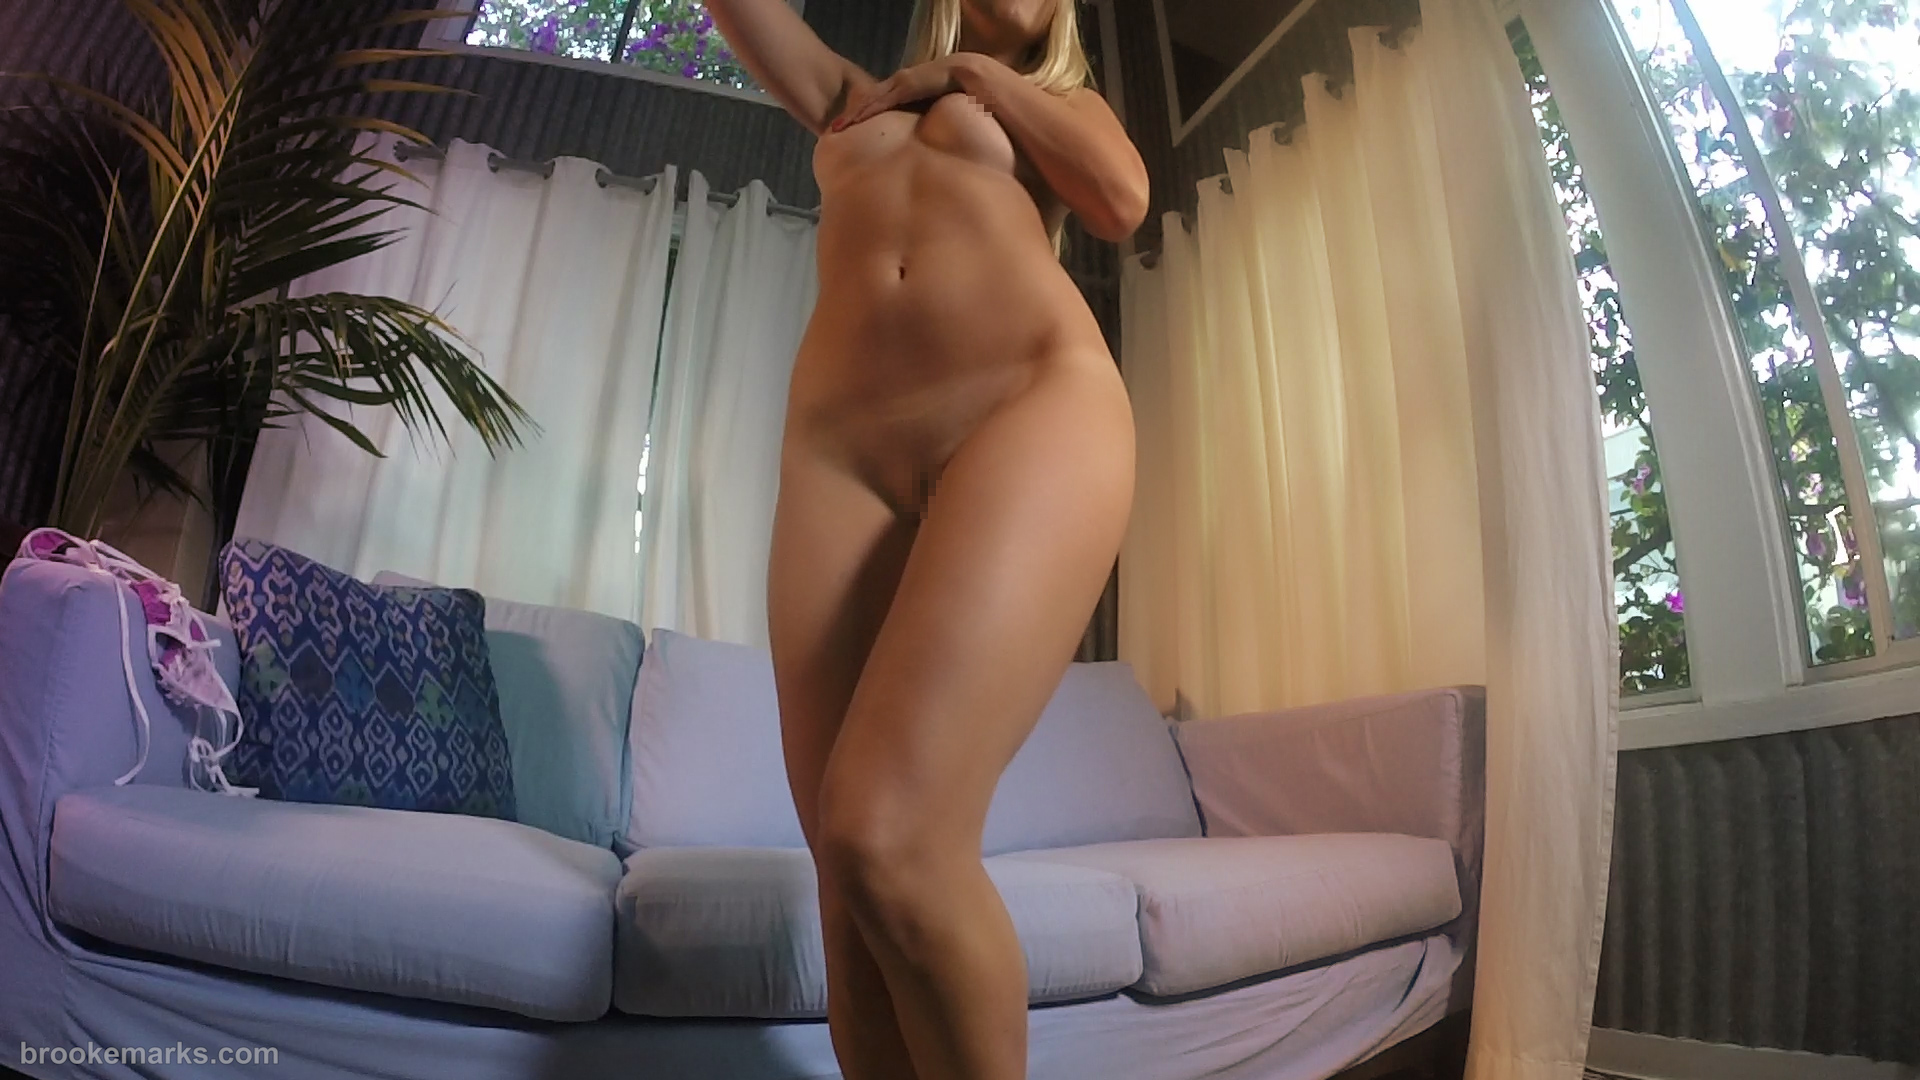 With you Brooke marks naked videos pussy consider